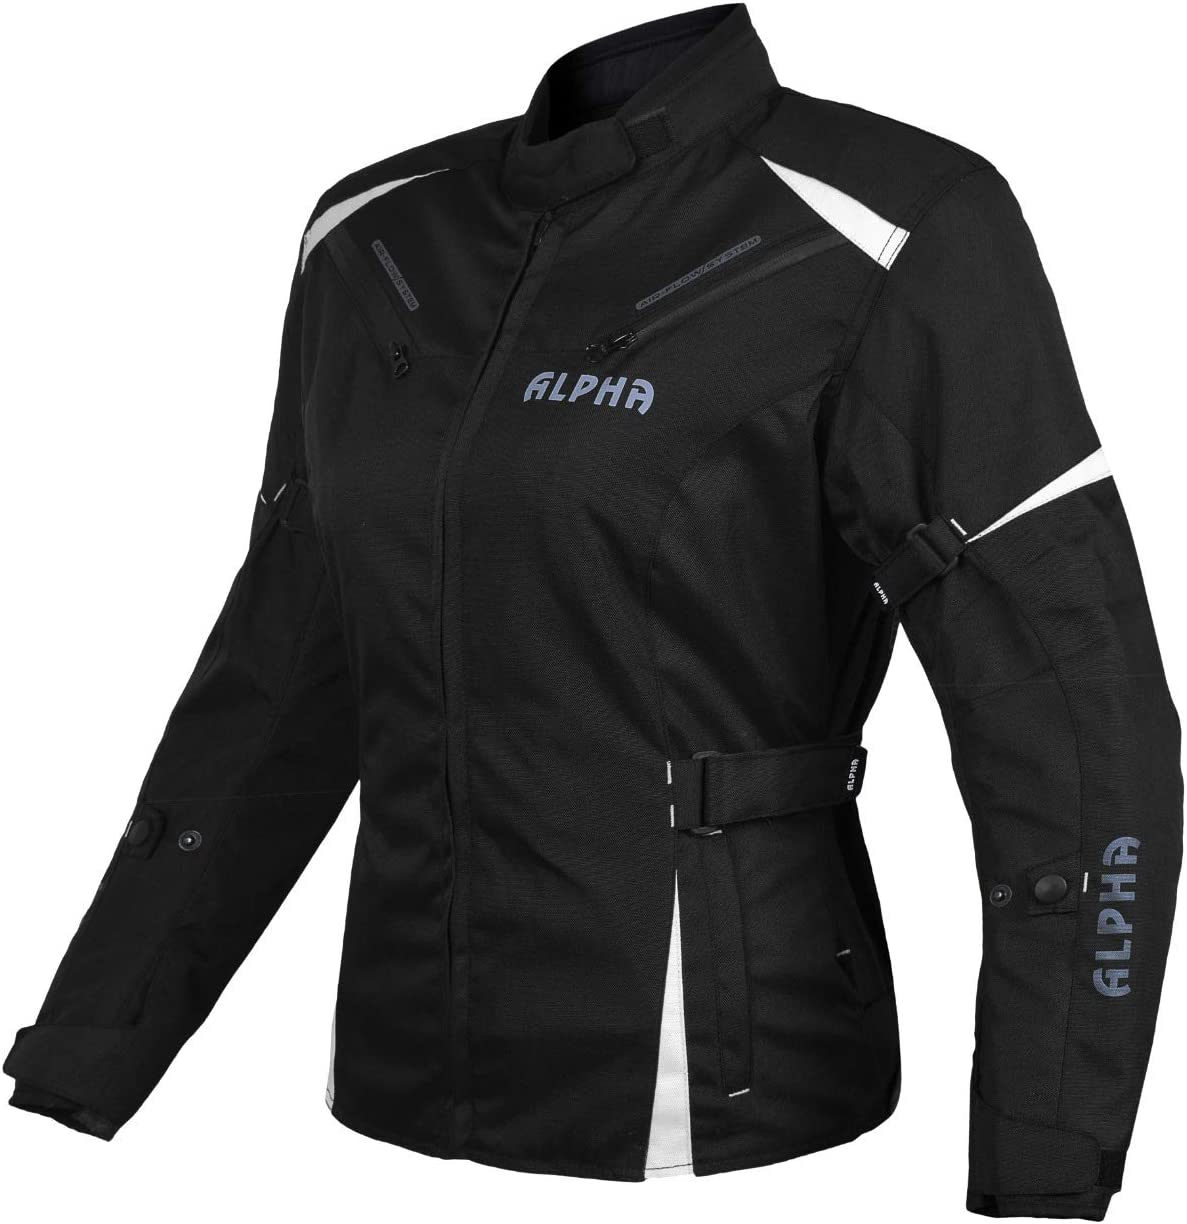 BLACK//WHITE, MEDIUM ALPHA CYCLE GEAR ALL SEASON WOMEN MOTORCYCLE JACKET WATERPROOF RIDING WITH CE ARMOUR